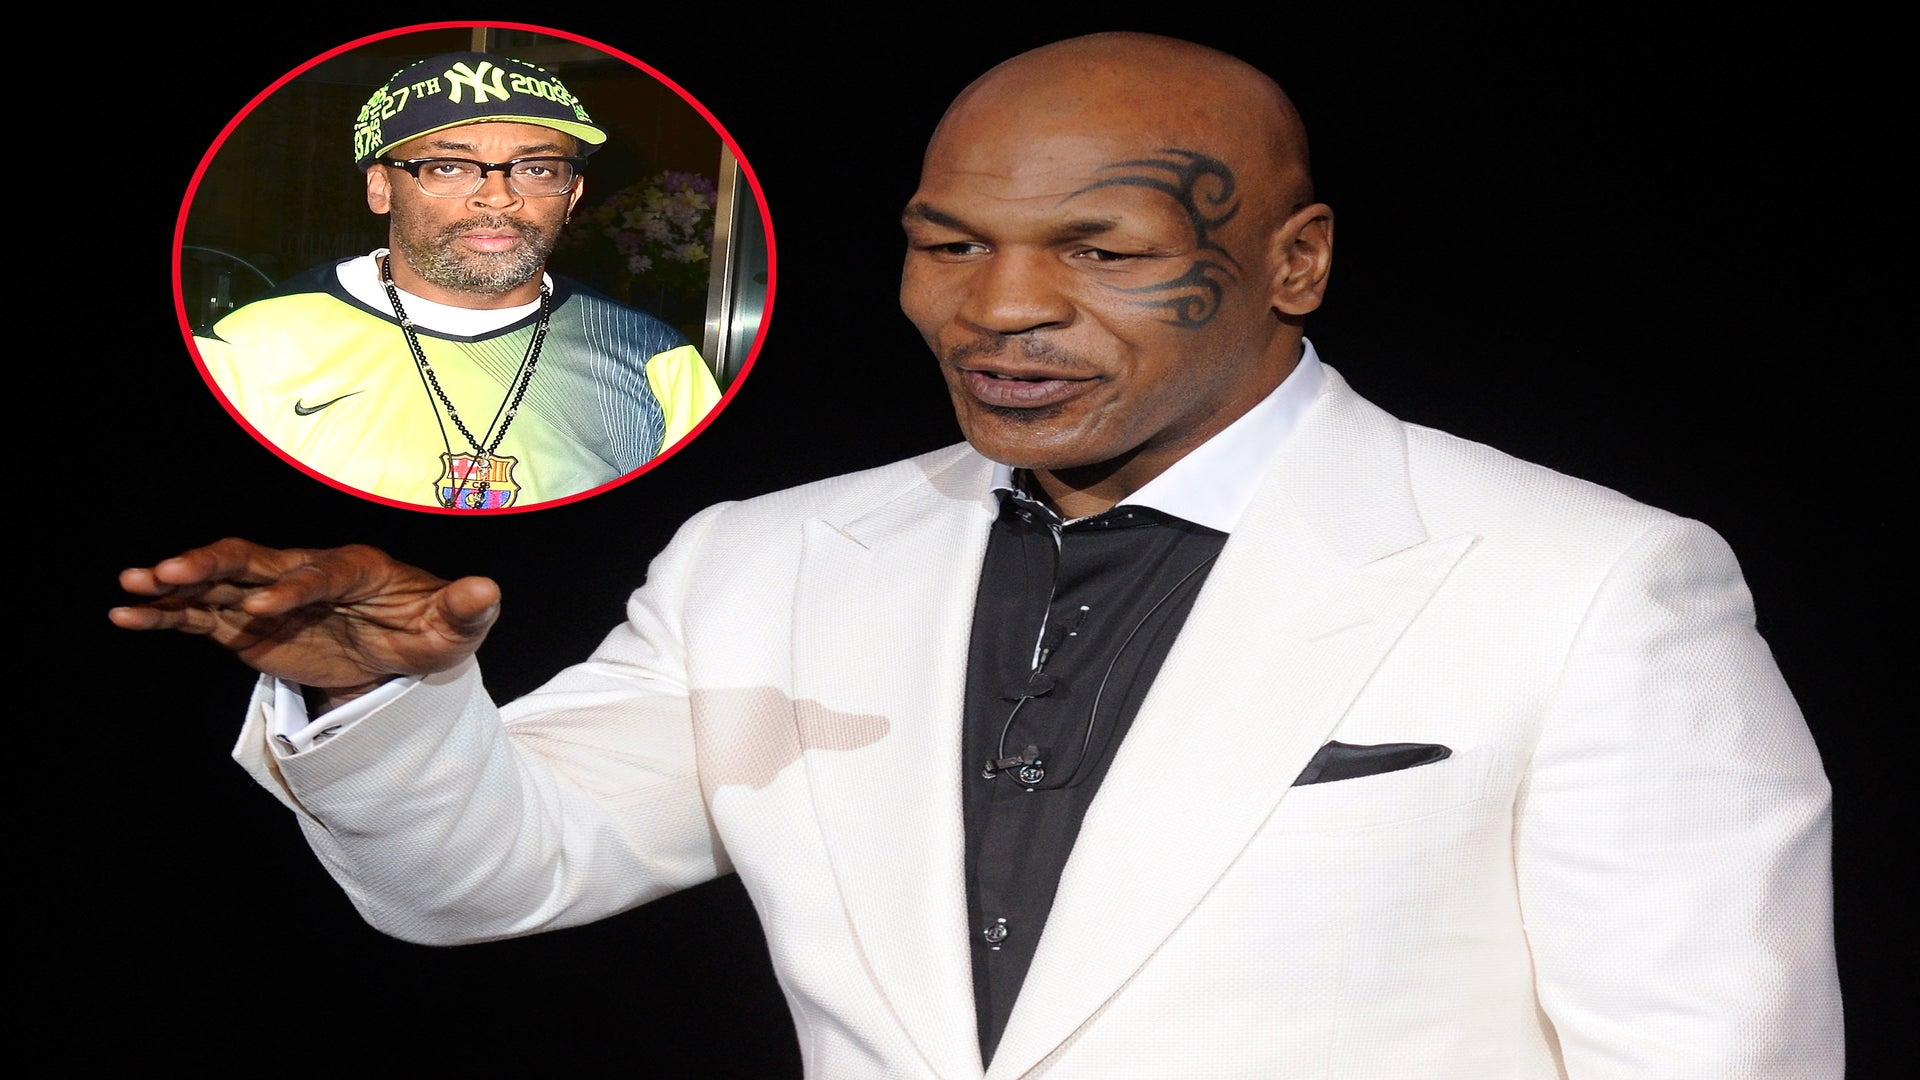 Spike Lee to Direct Mike Tyson's Broadway Play